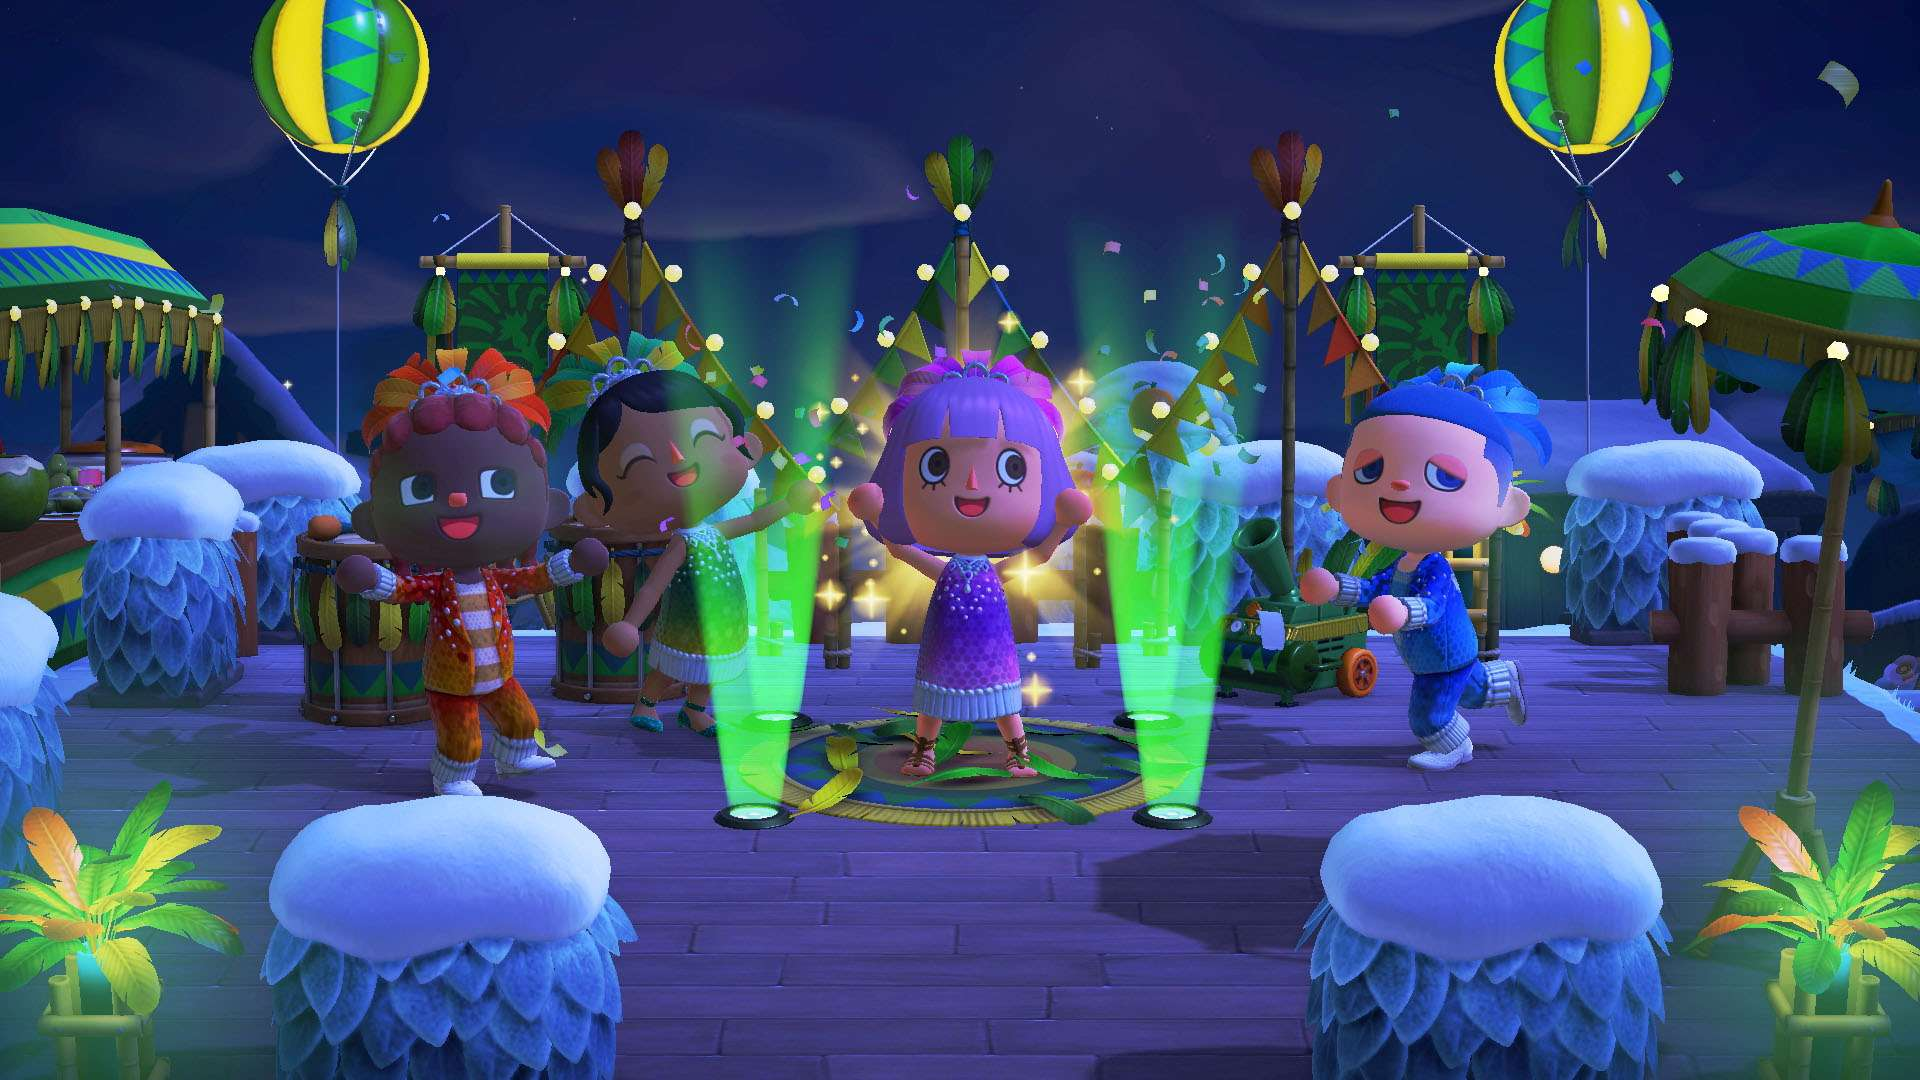 Animal Crossing New Horizons Carnaval Actualizacion 0 - El Carnaval llega a Animal Crossing: New Horizons